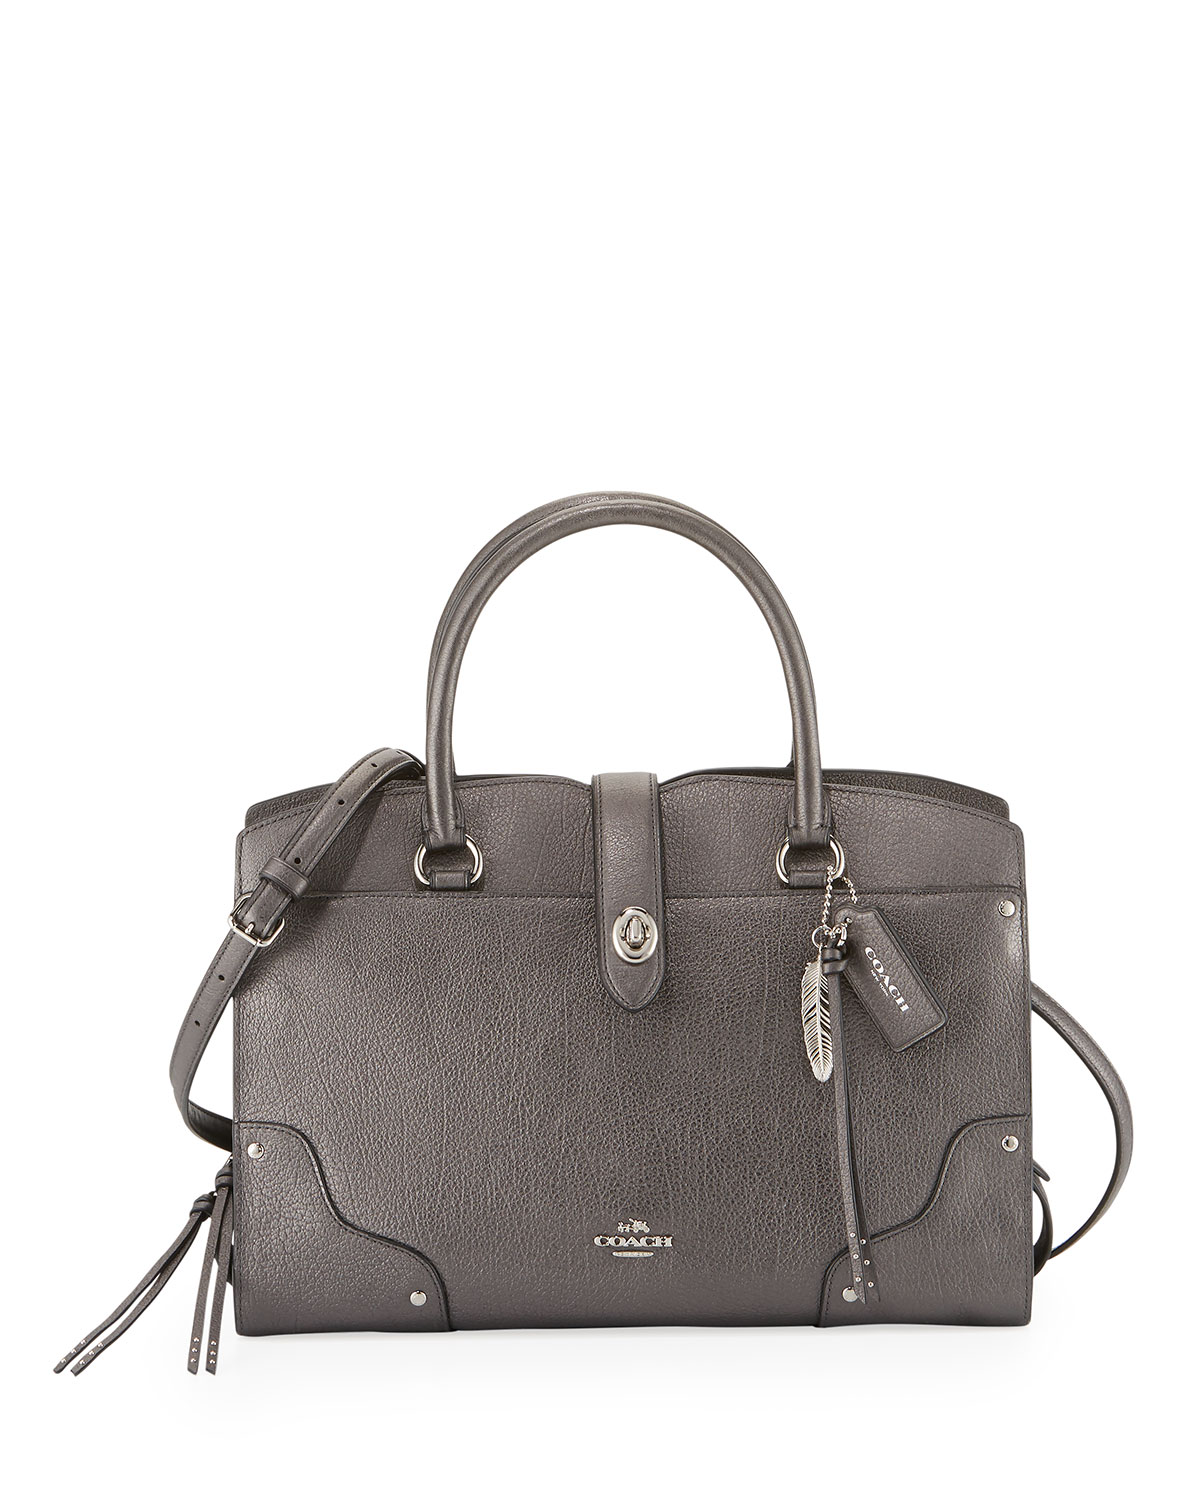 Tote - Mercer Satchel 30 Metallic Leather Silver/Metallic Graphite - grey - Tote for ladies Coach Bxcwb9